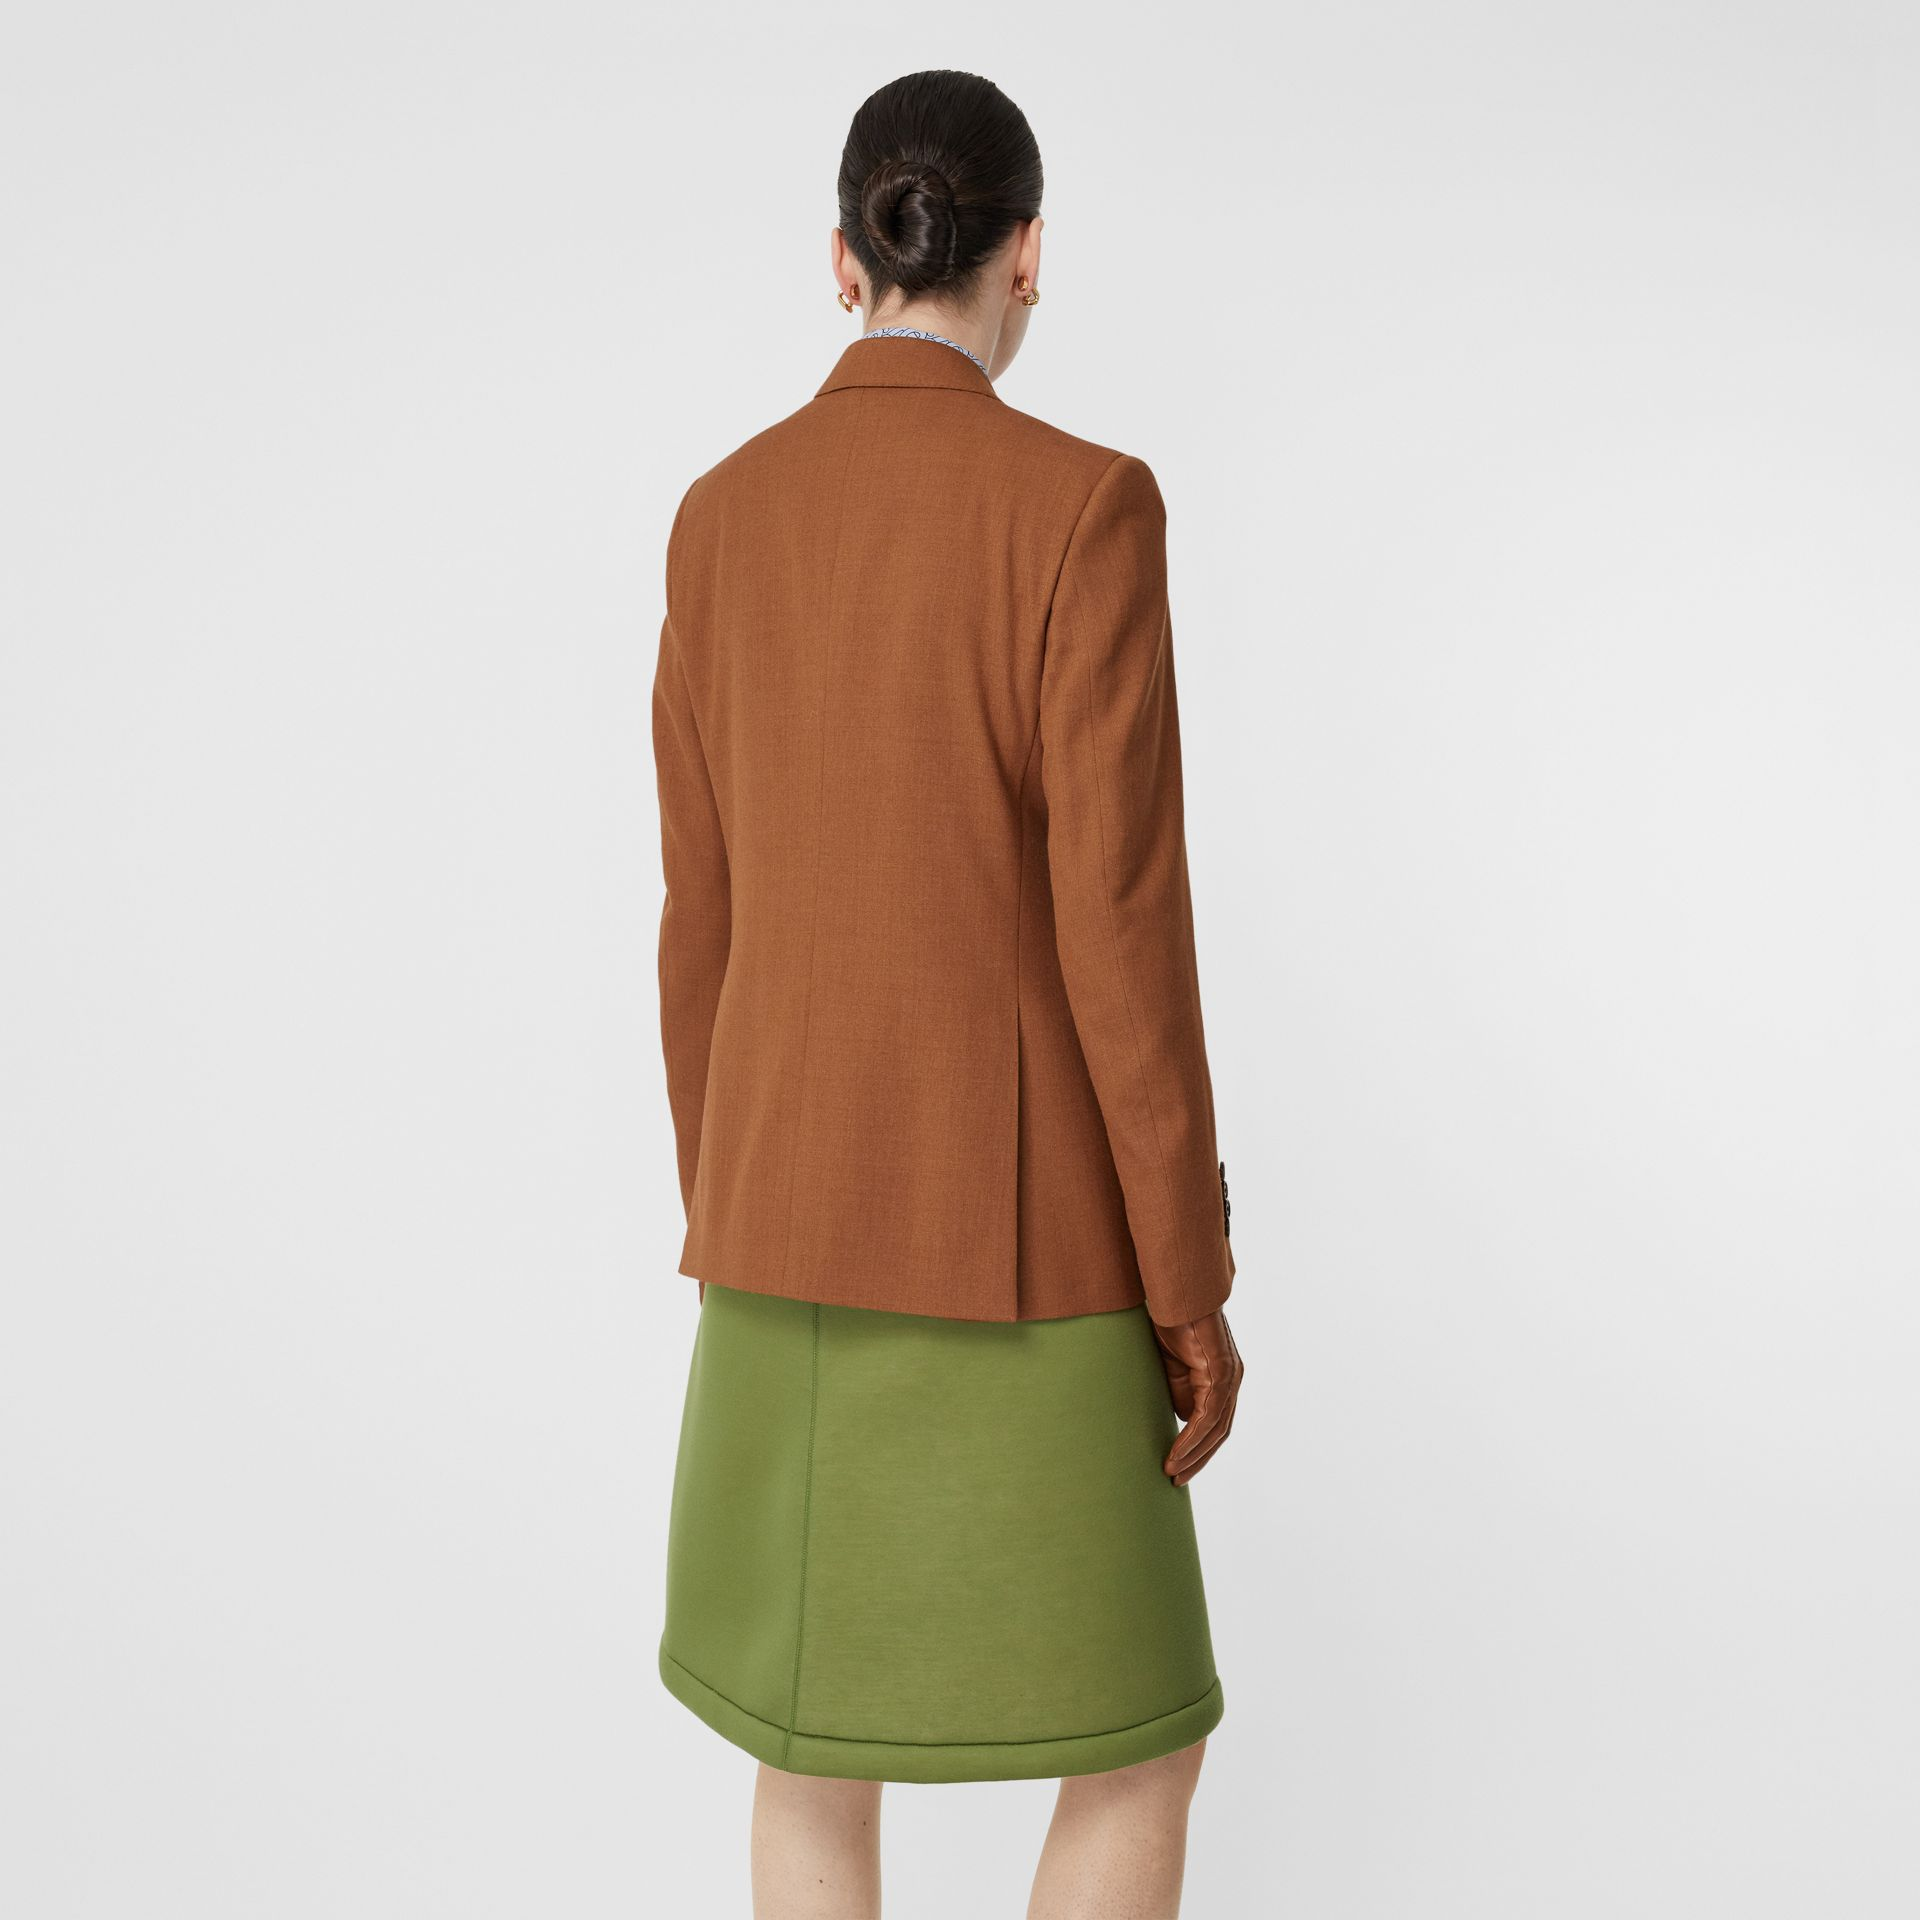 Wool, Silk and Cotton Blazer in Rust - Women | Burberry - gallery image 2